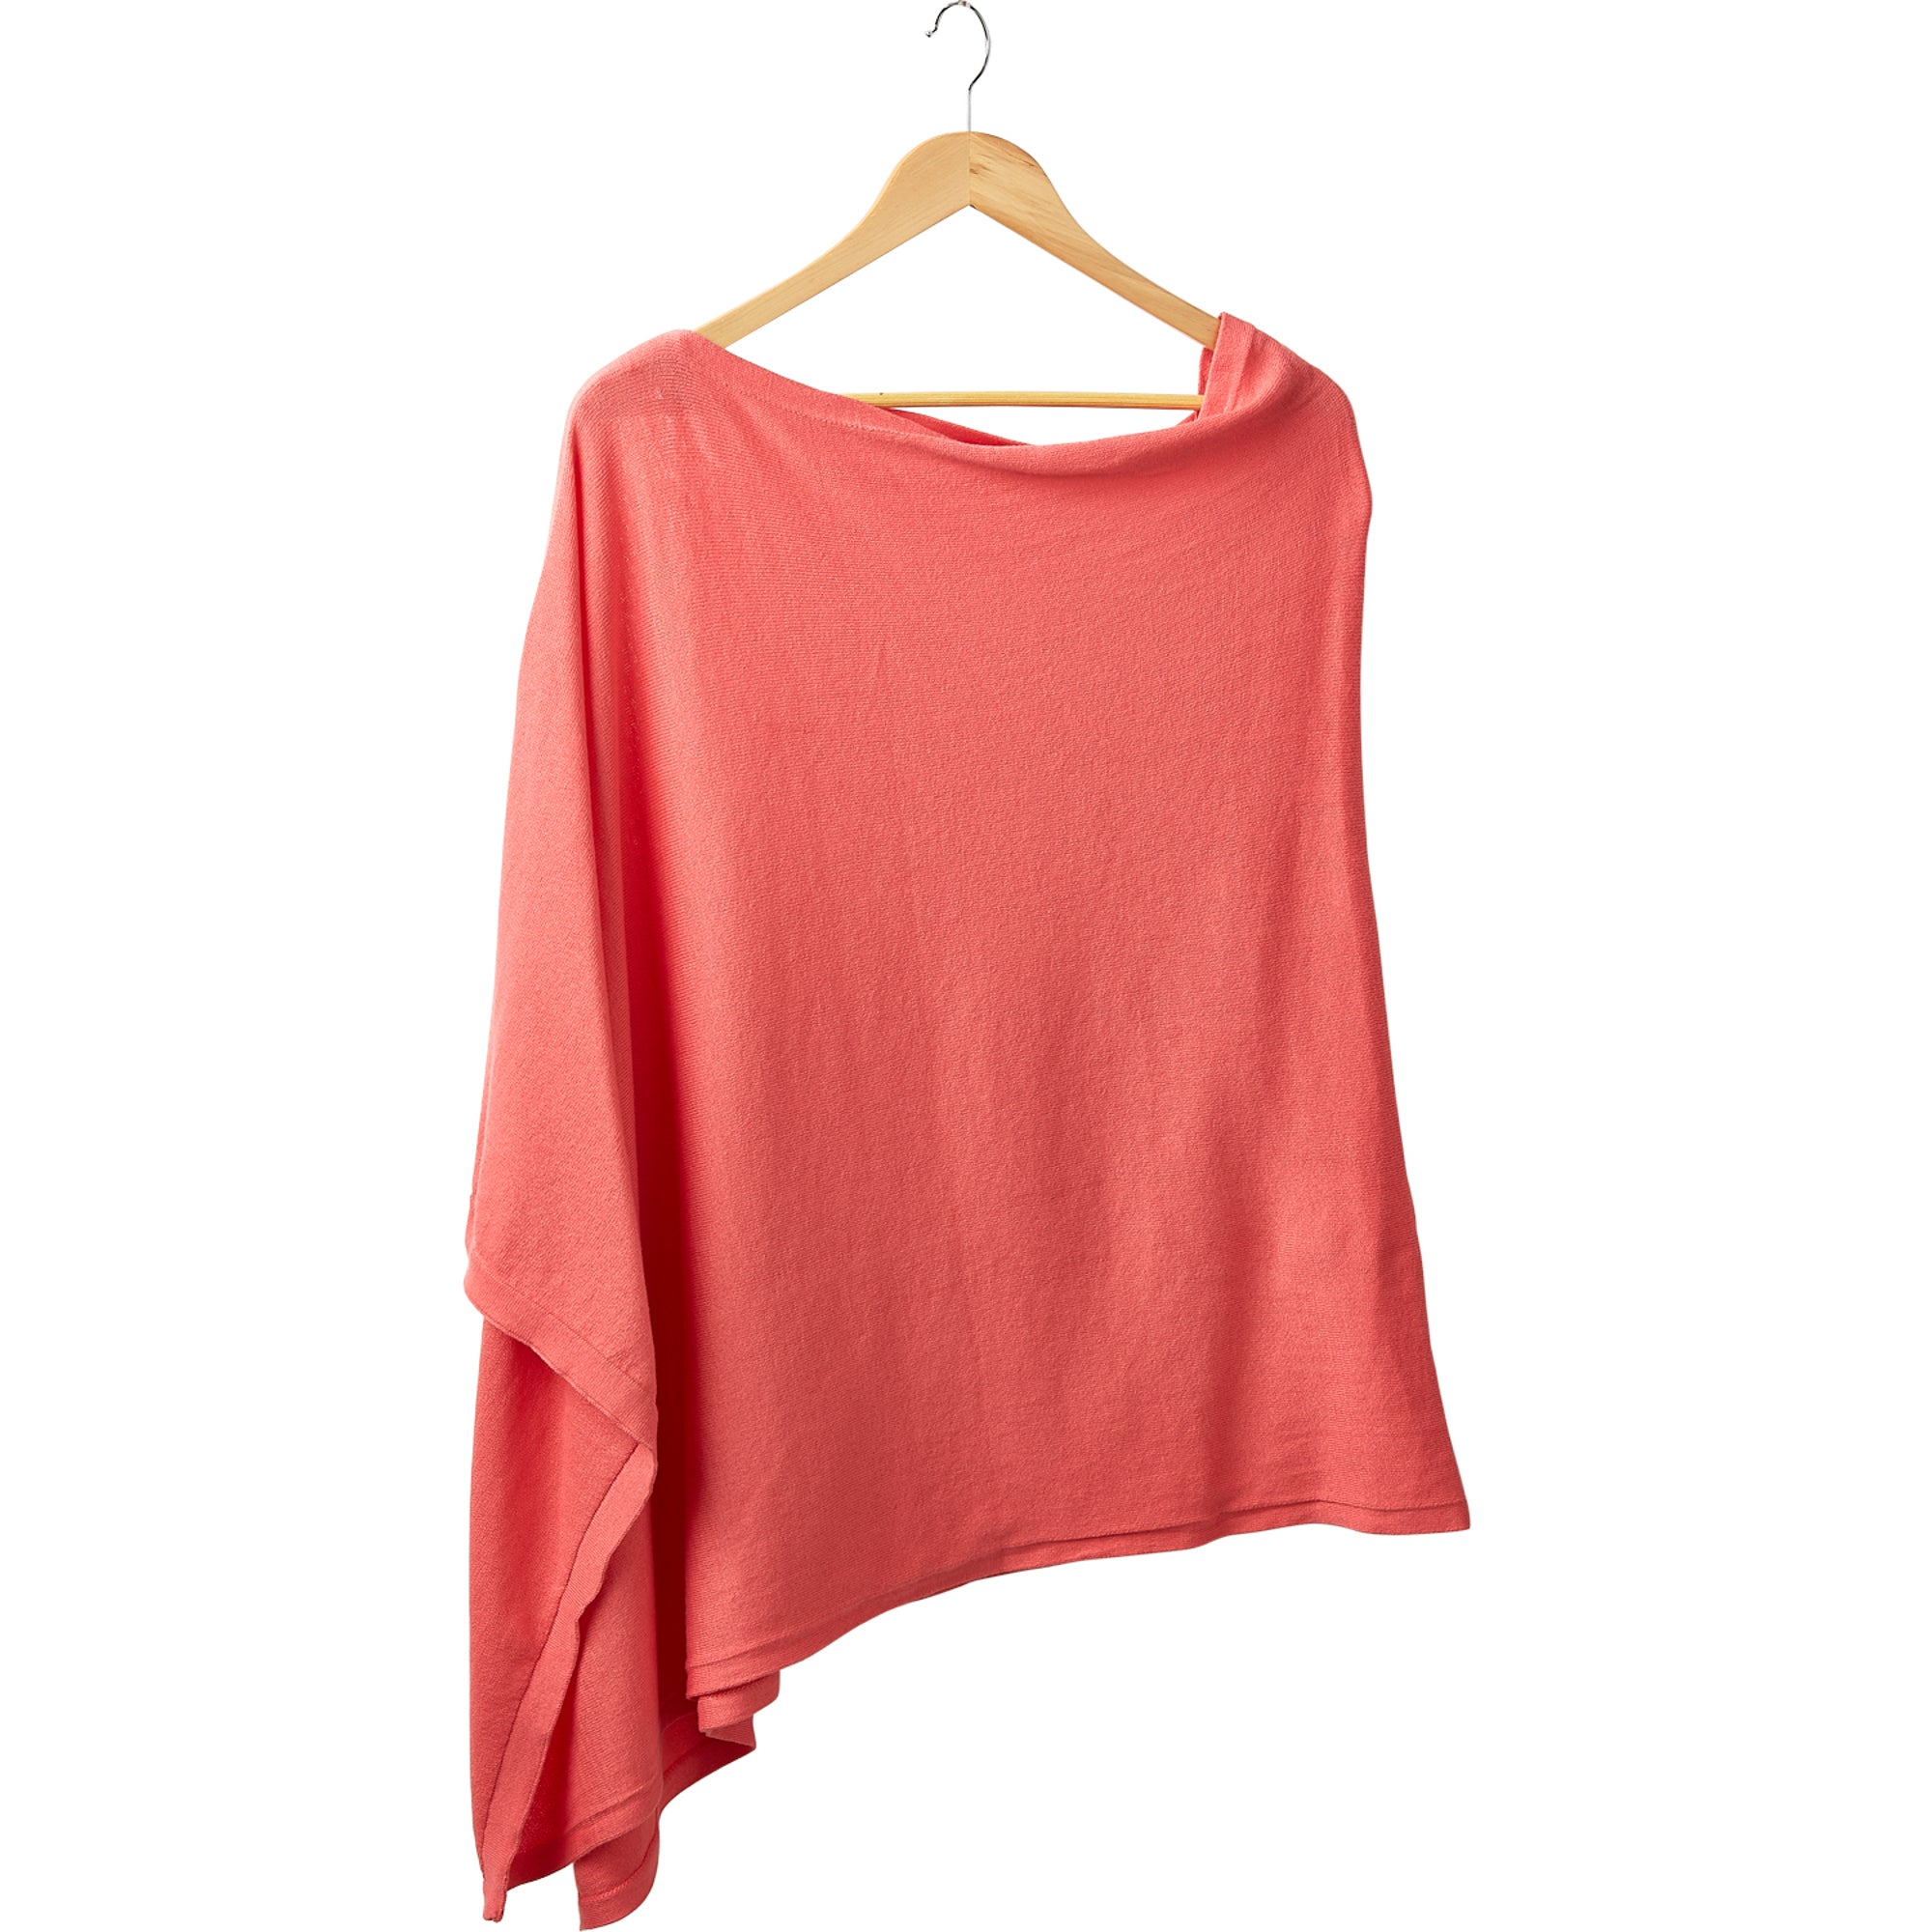 Elegant Solid Cotton Poncho - Coral